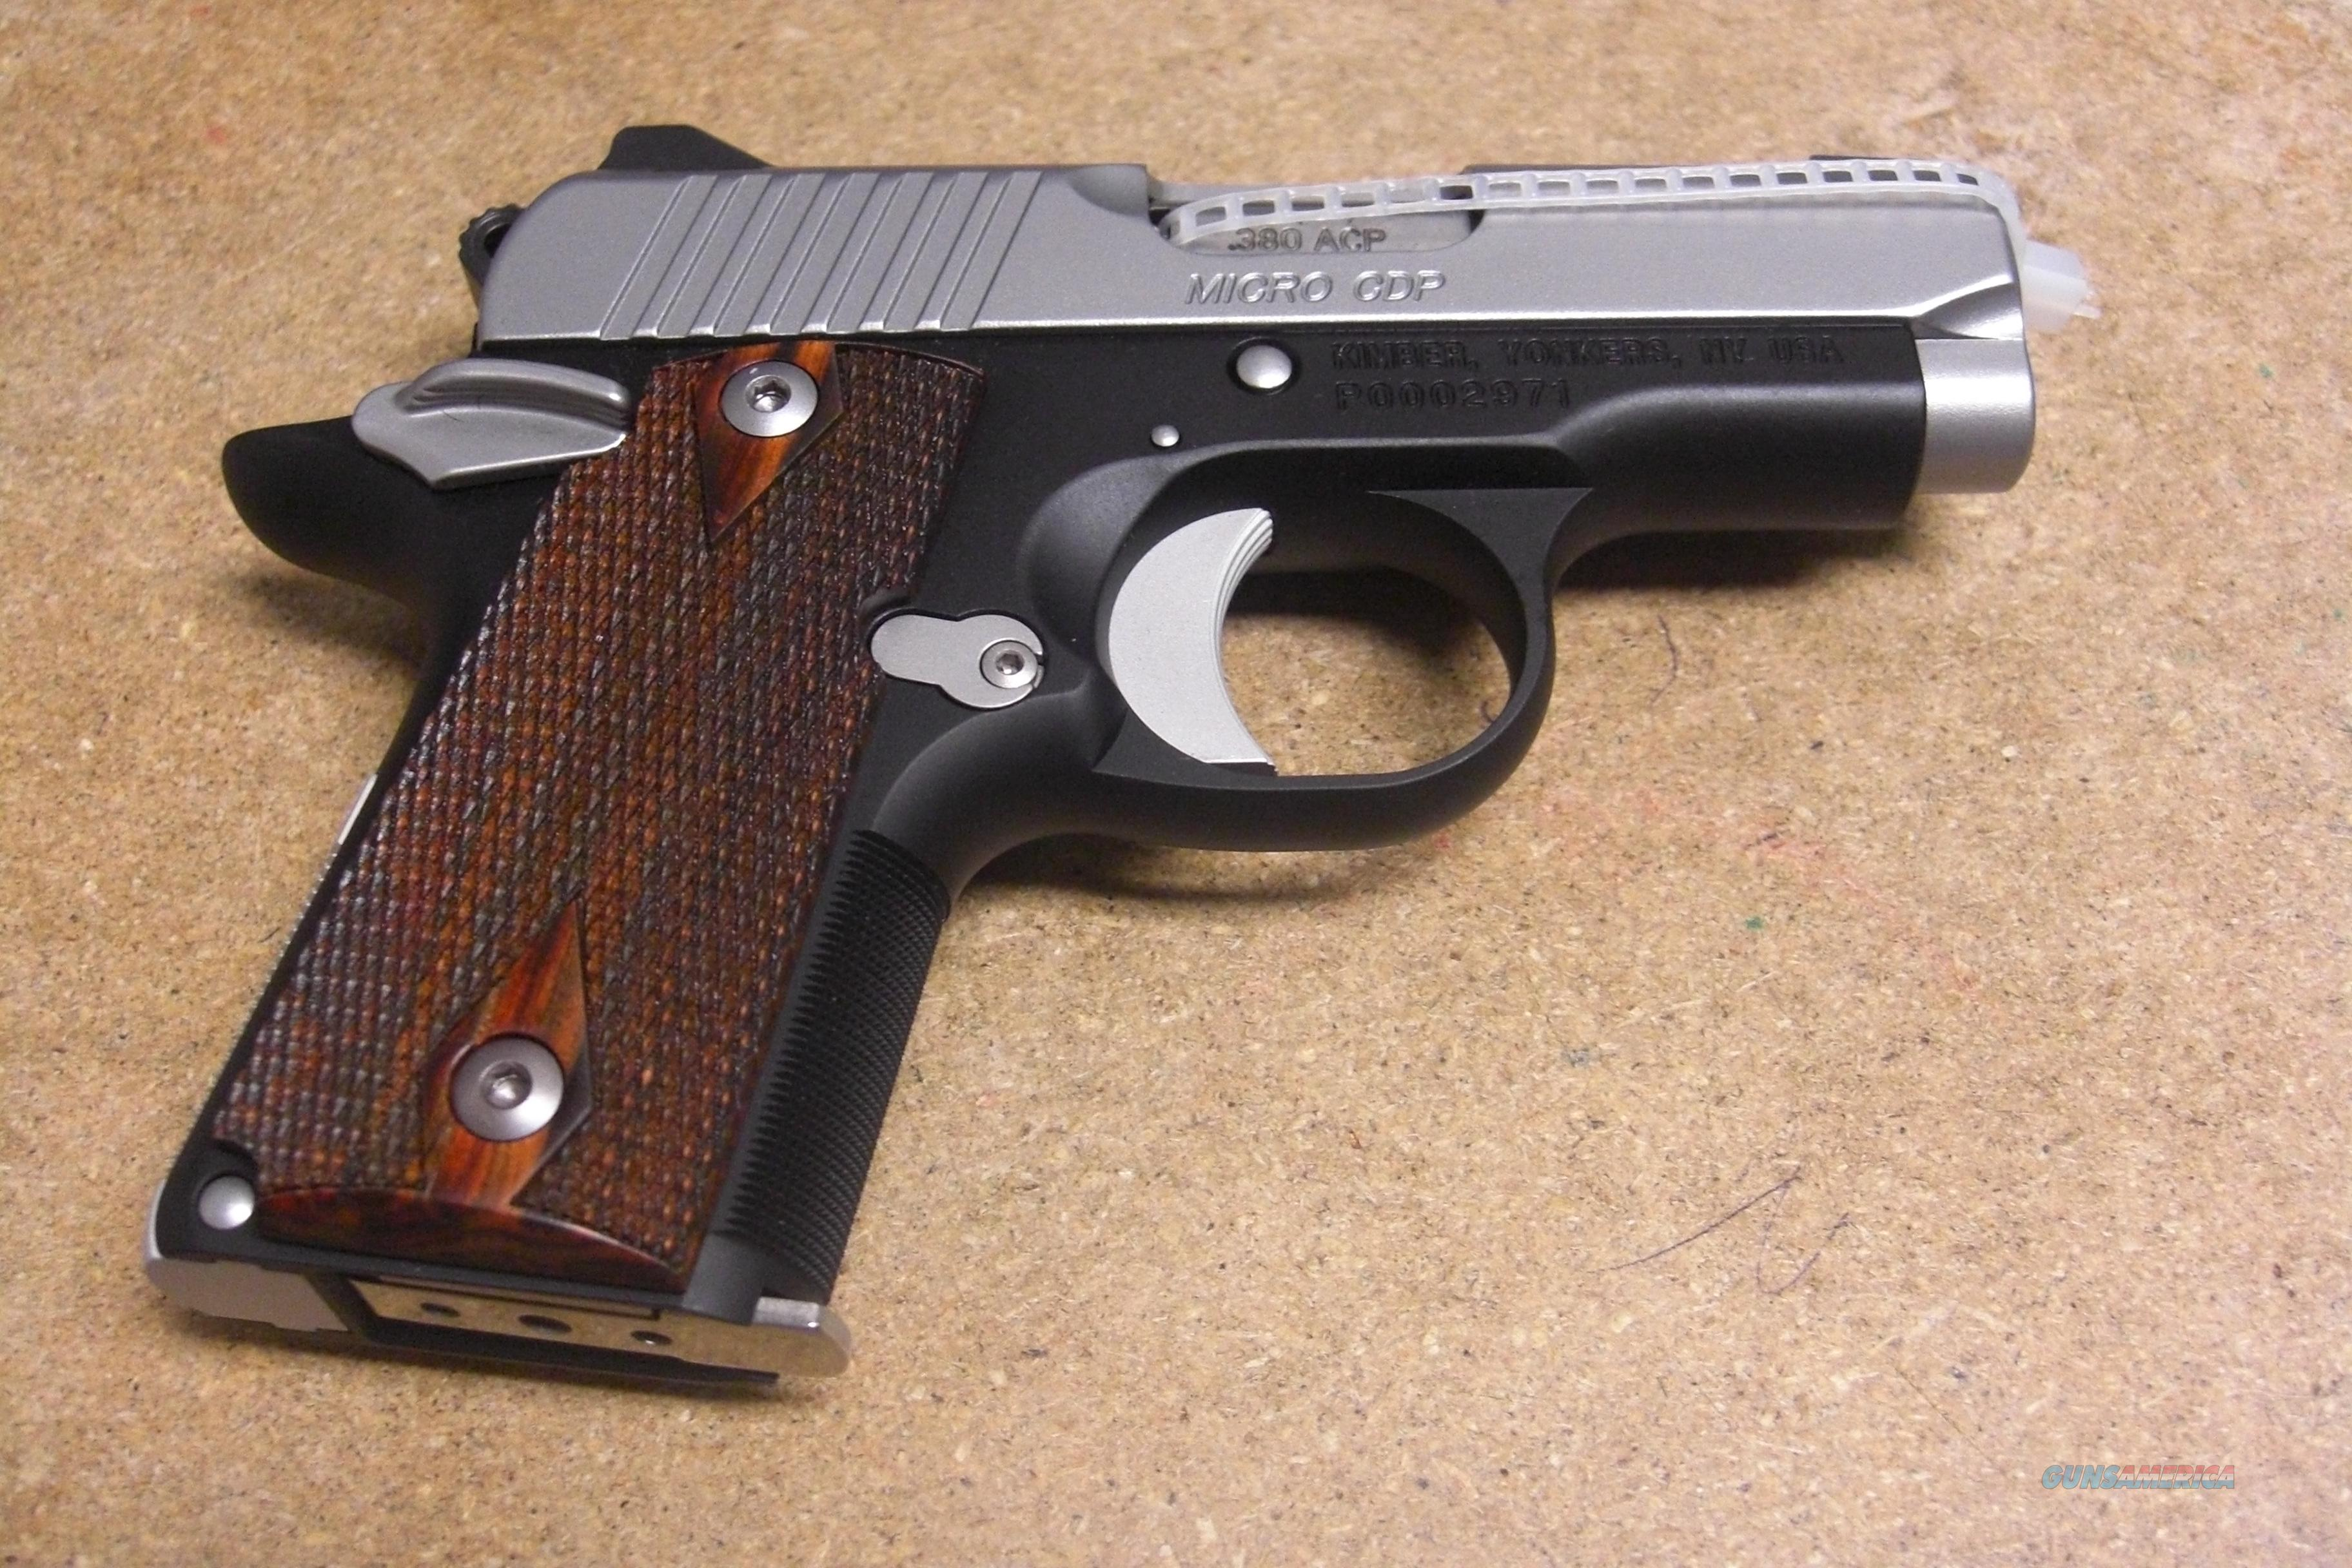 Micro CDP  w/night sights  Guns > Pistols > Kimber of America Pistols